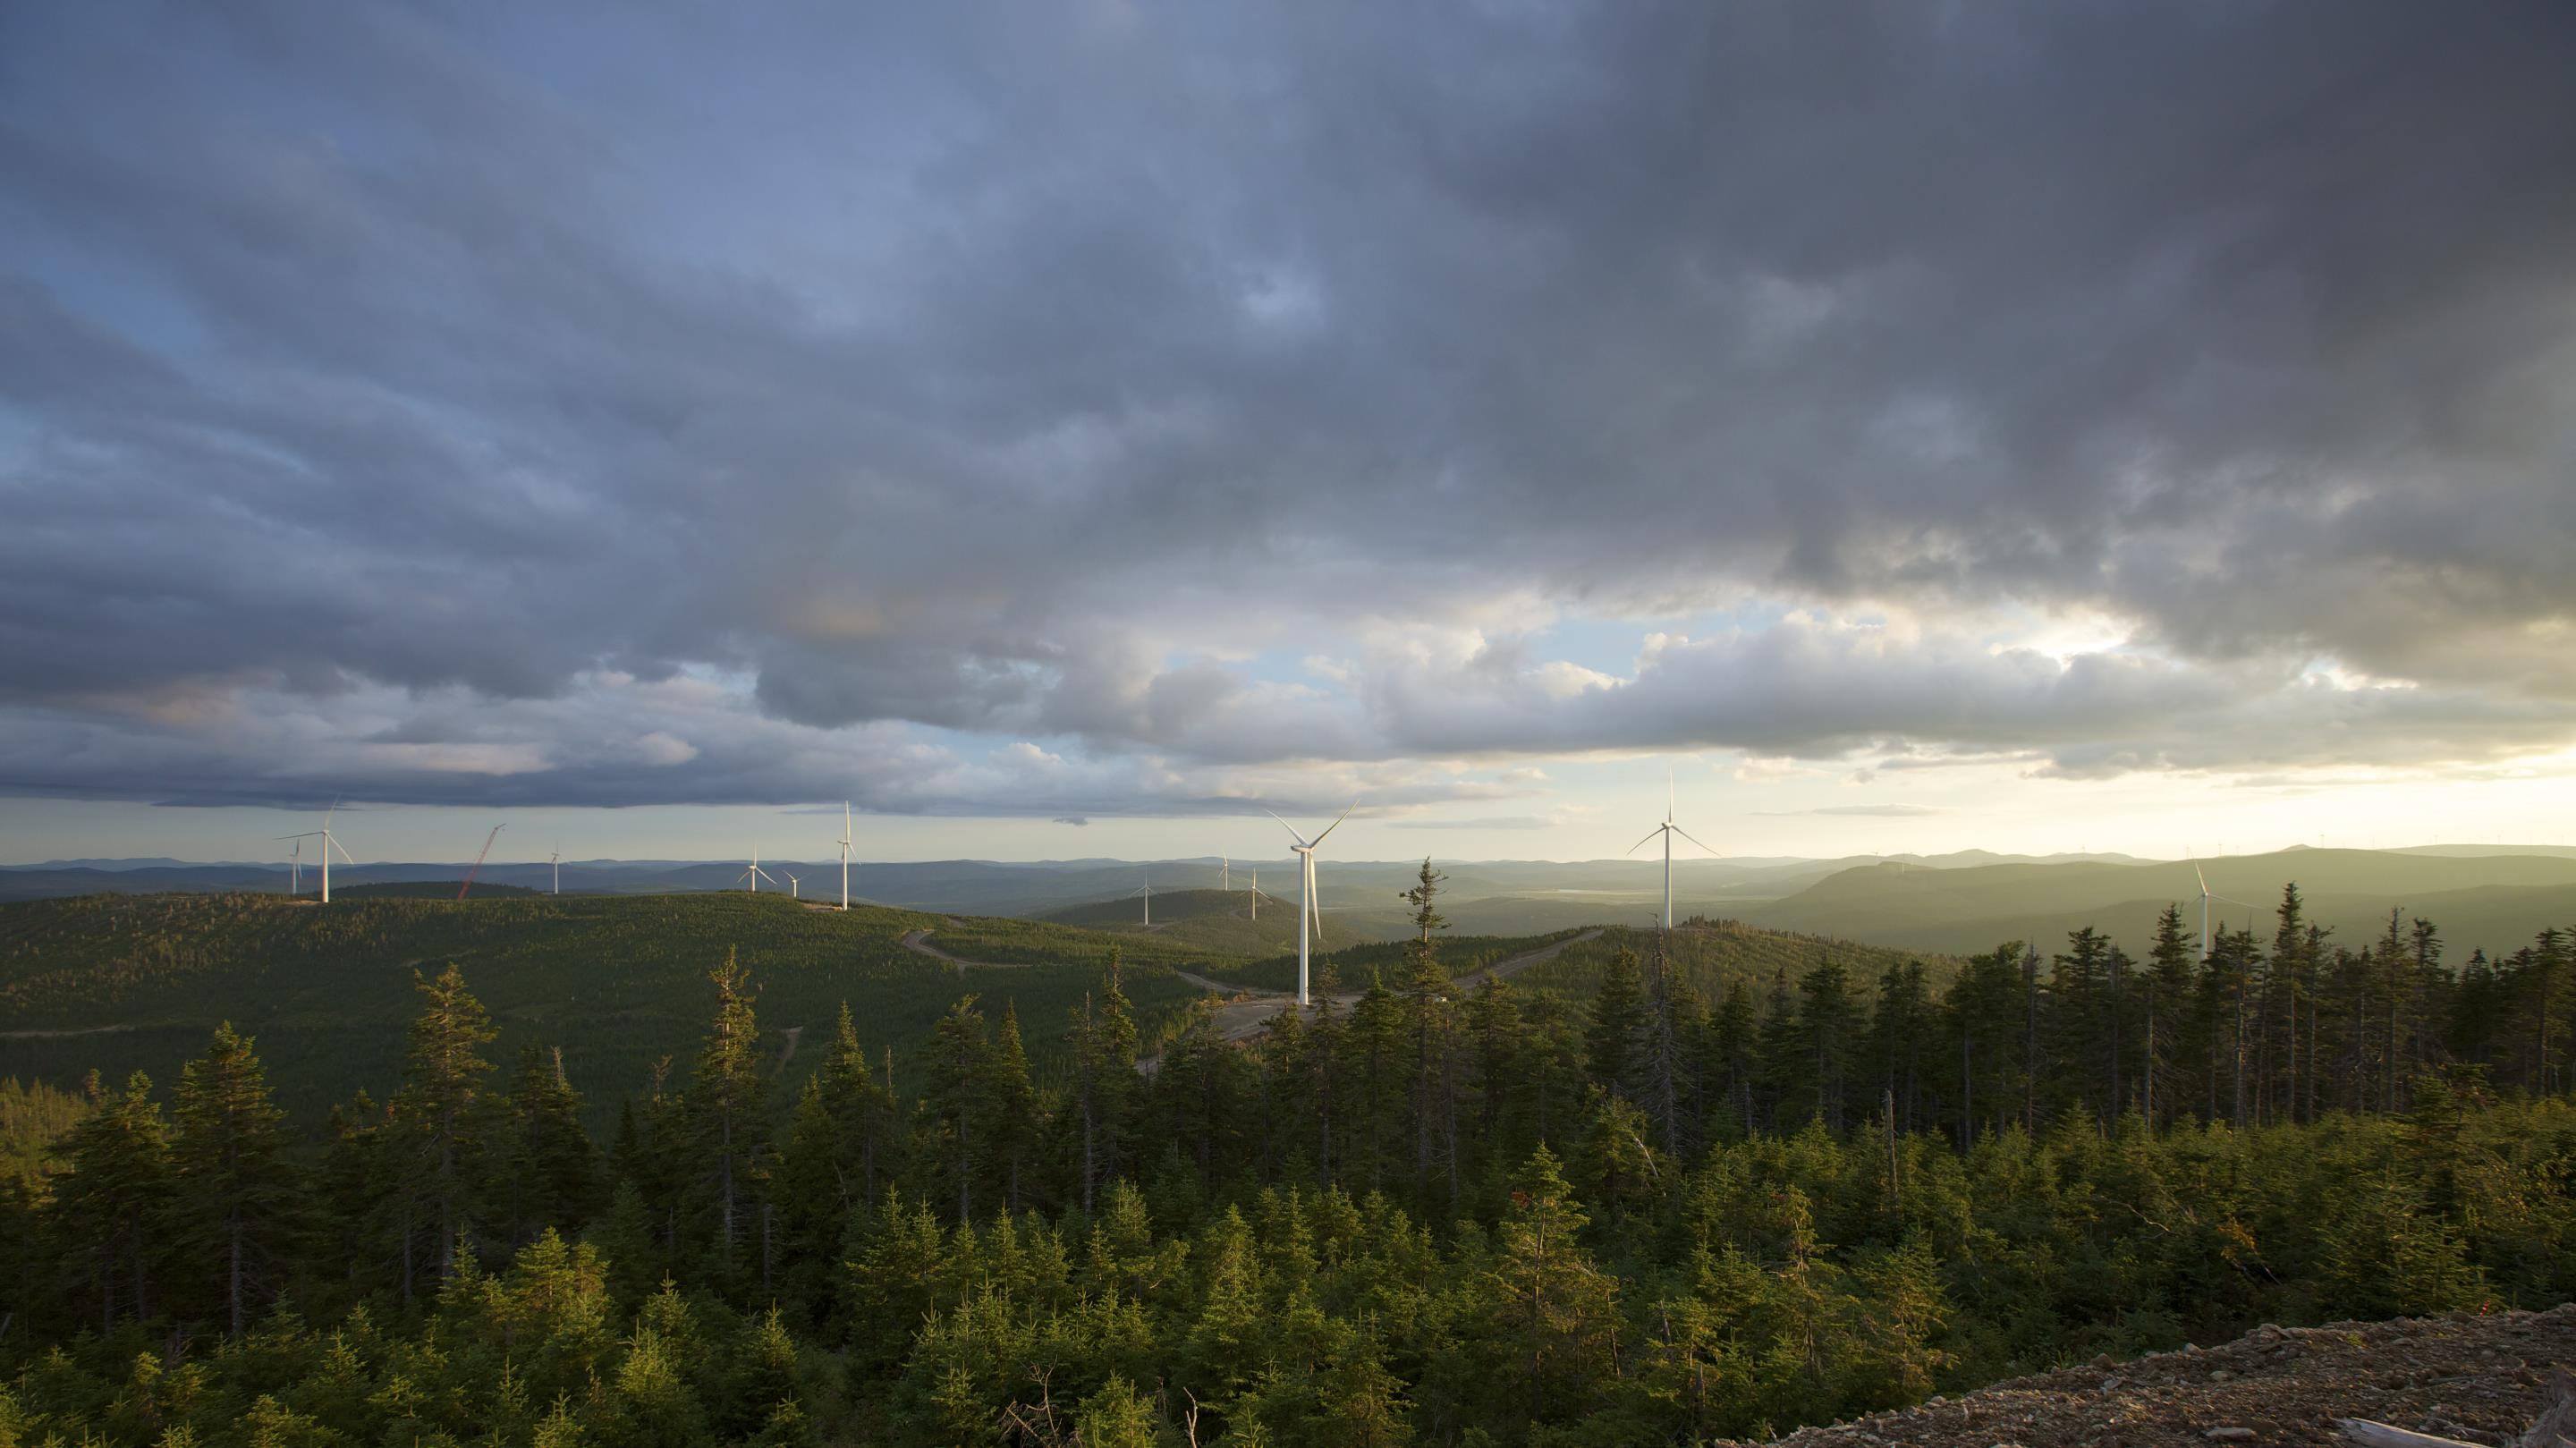 MTR_September2015__155_Copy Mont-Rothery Wind Project Gets Dedicated In Quebec